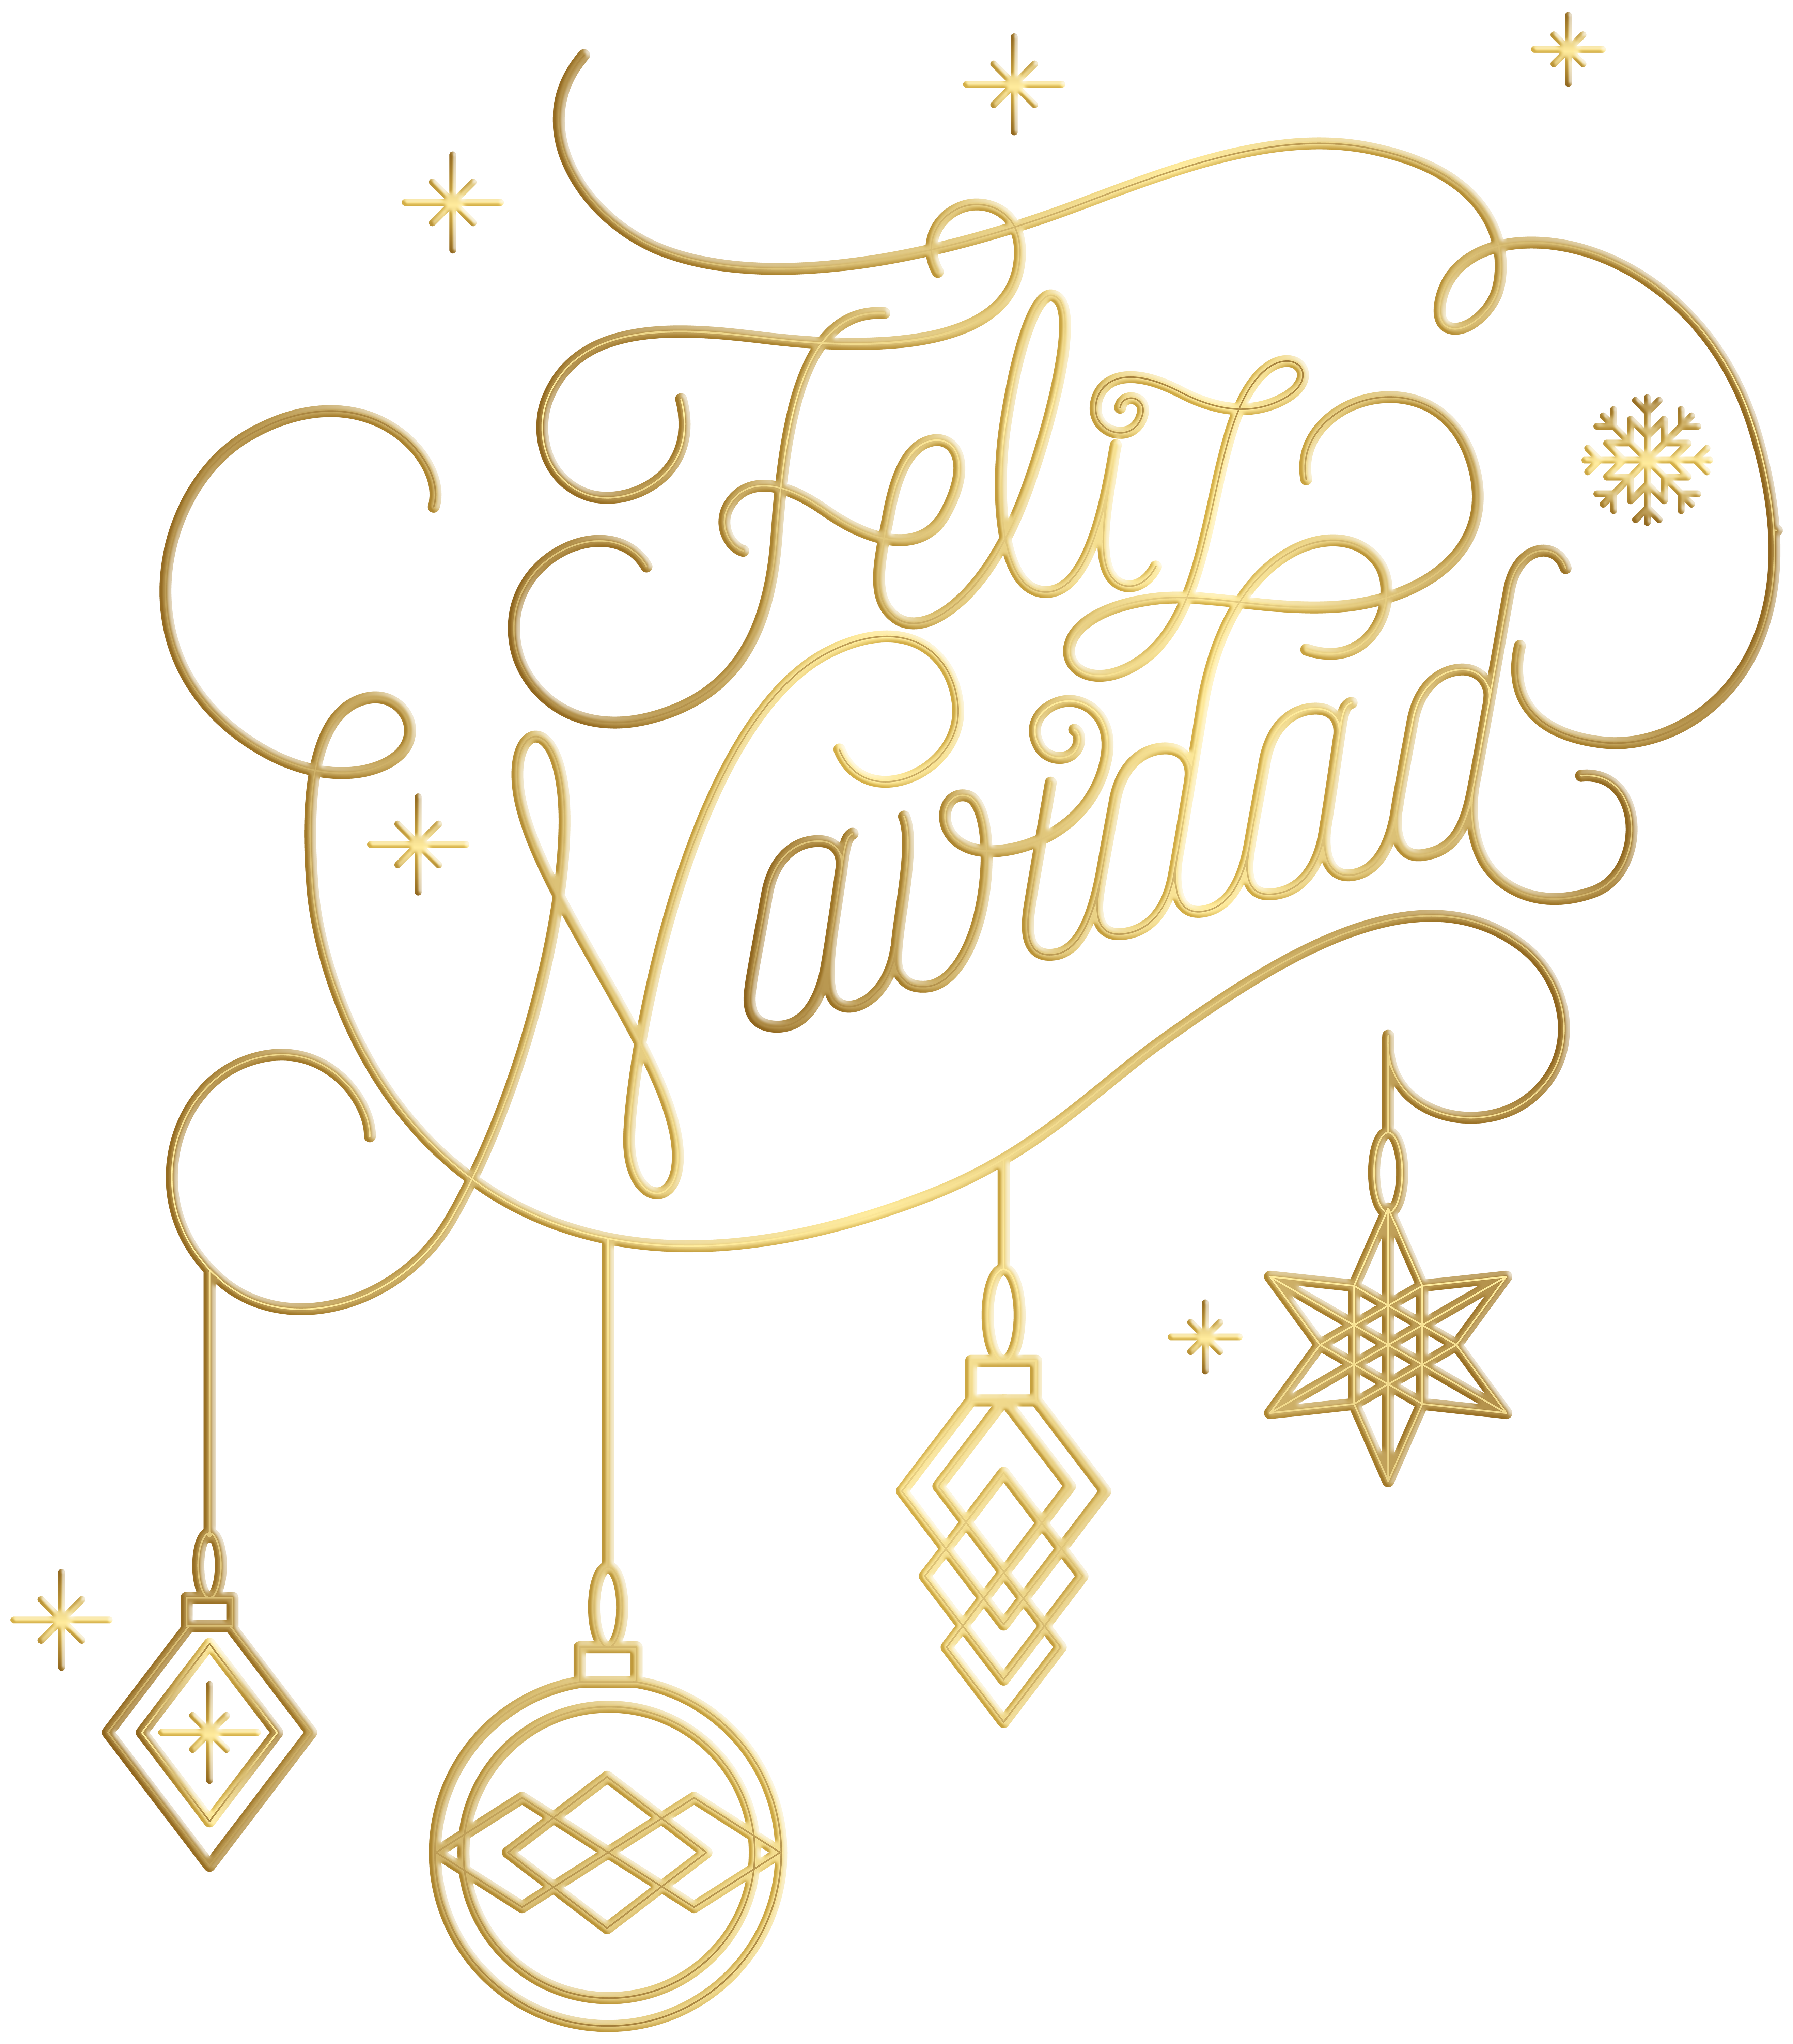 Feliz Navidad Png Clip Art Image Gallery Yopriceville High Quality Images And Transparent Png Free Clipart Feliz Navidad Free Clip Art Navidad